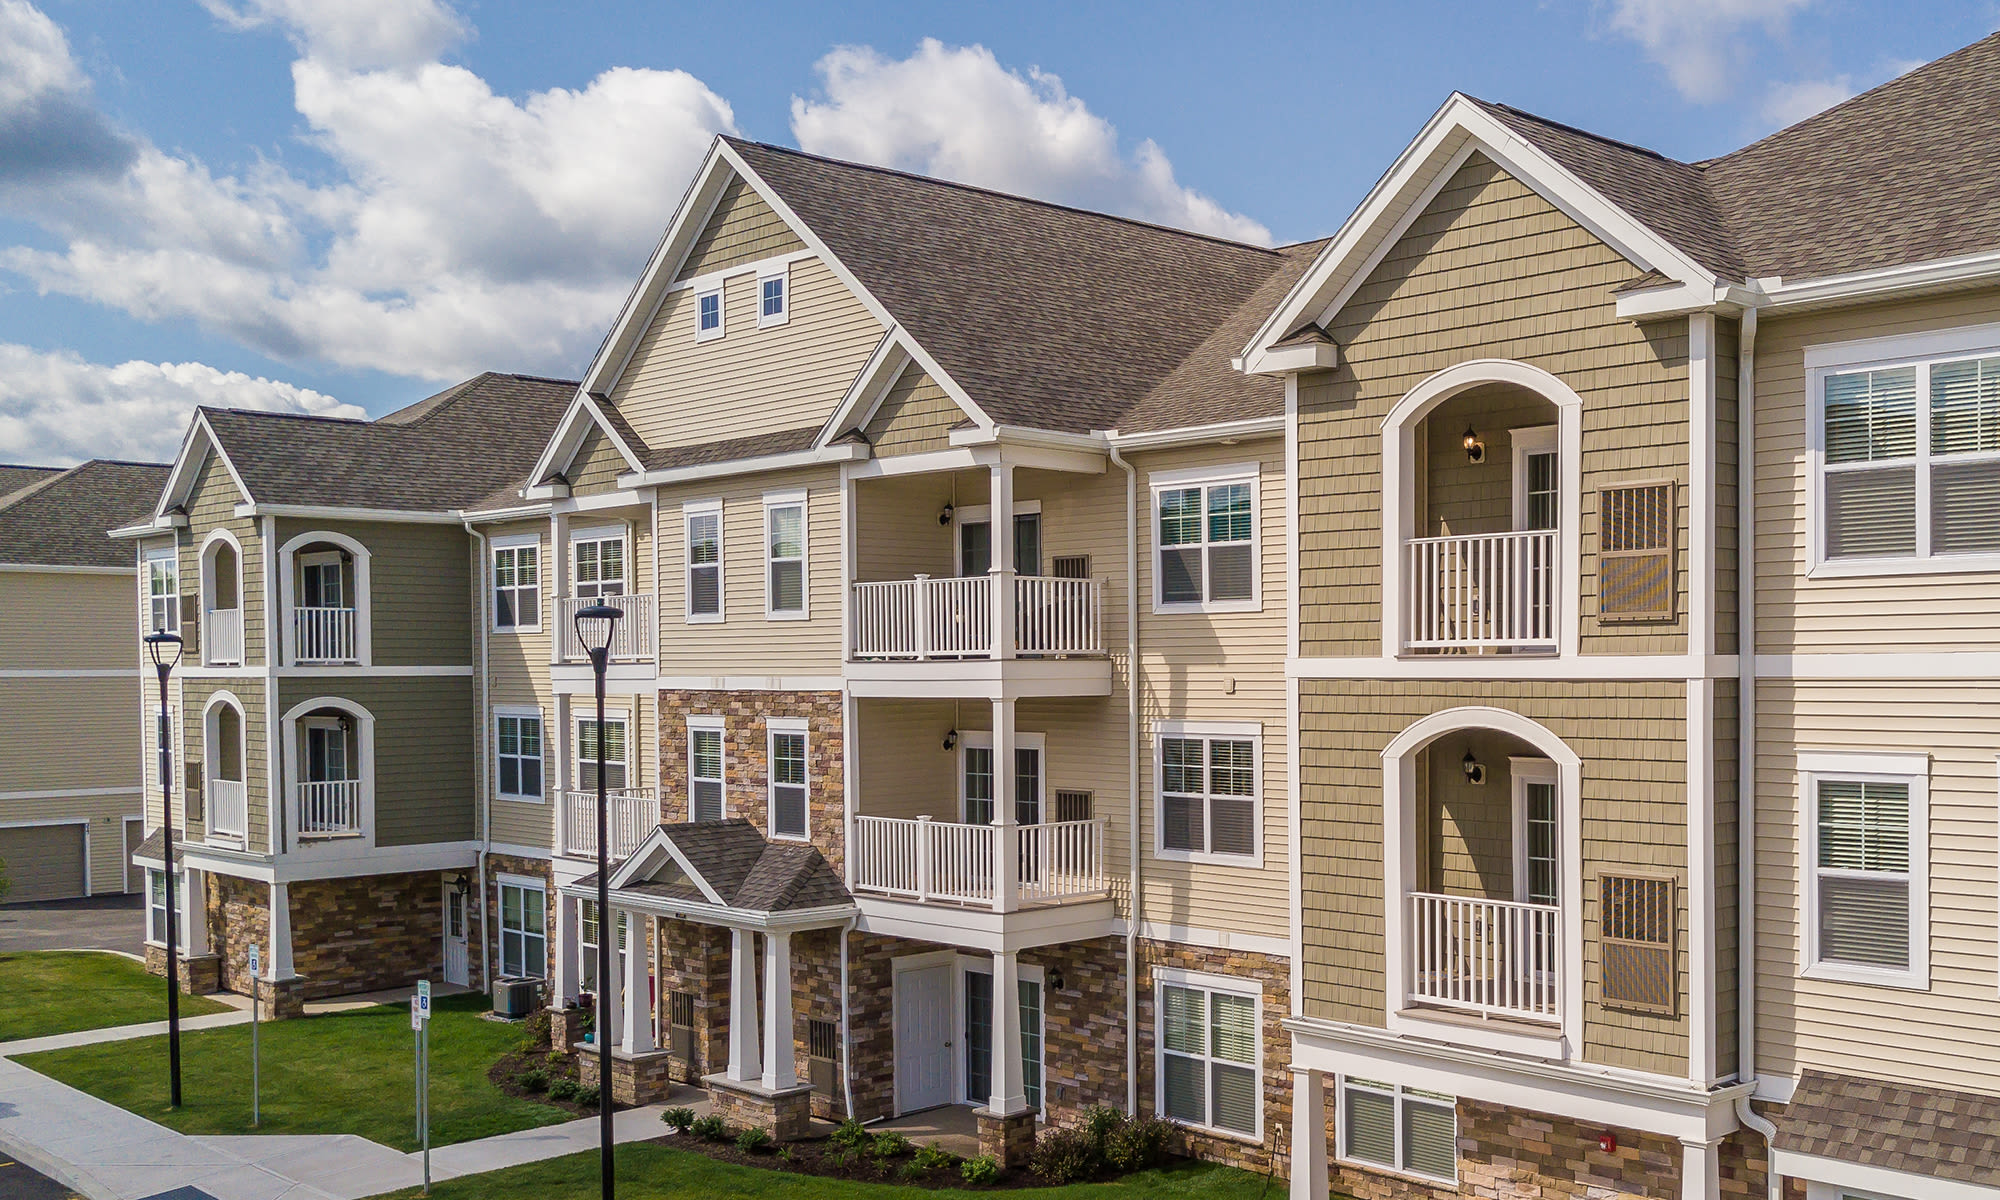 Apartments in Baldwinsville, New York